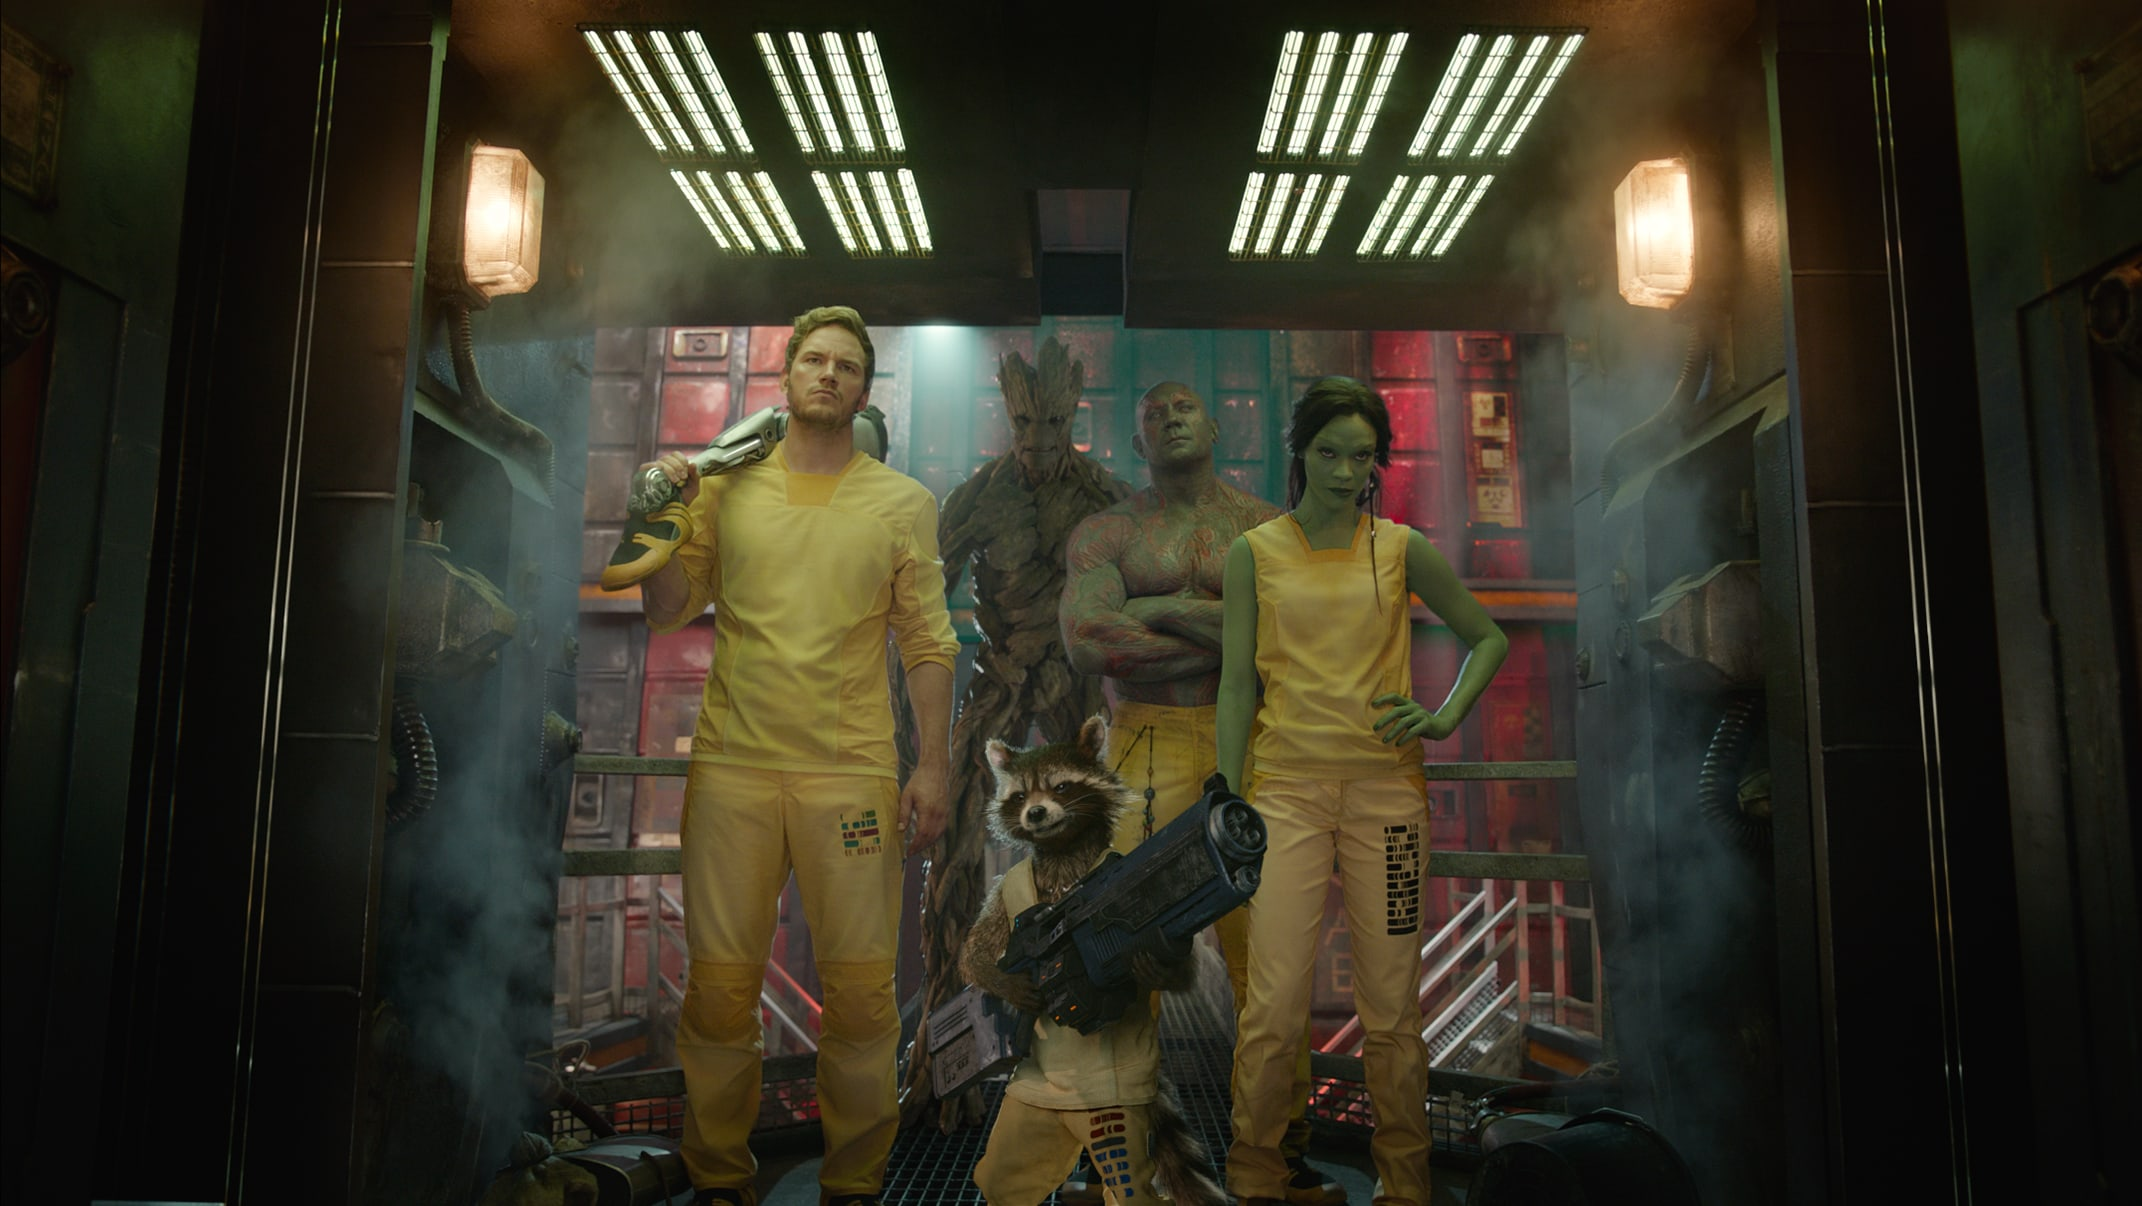 Star Lord, Groot, Rocket, Drax, and Gamora in yellow prisoner outfits in the movie Guardians of the Galaxy